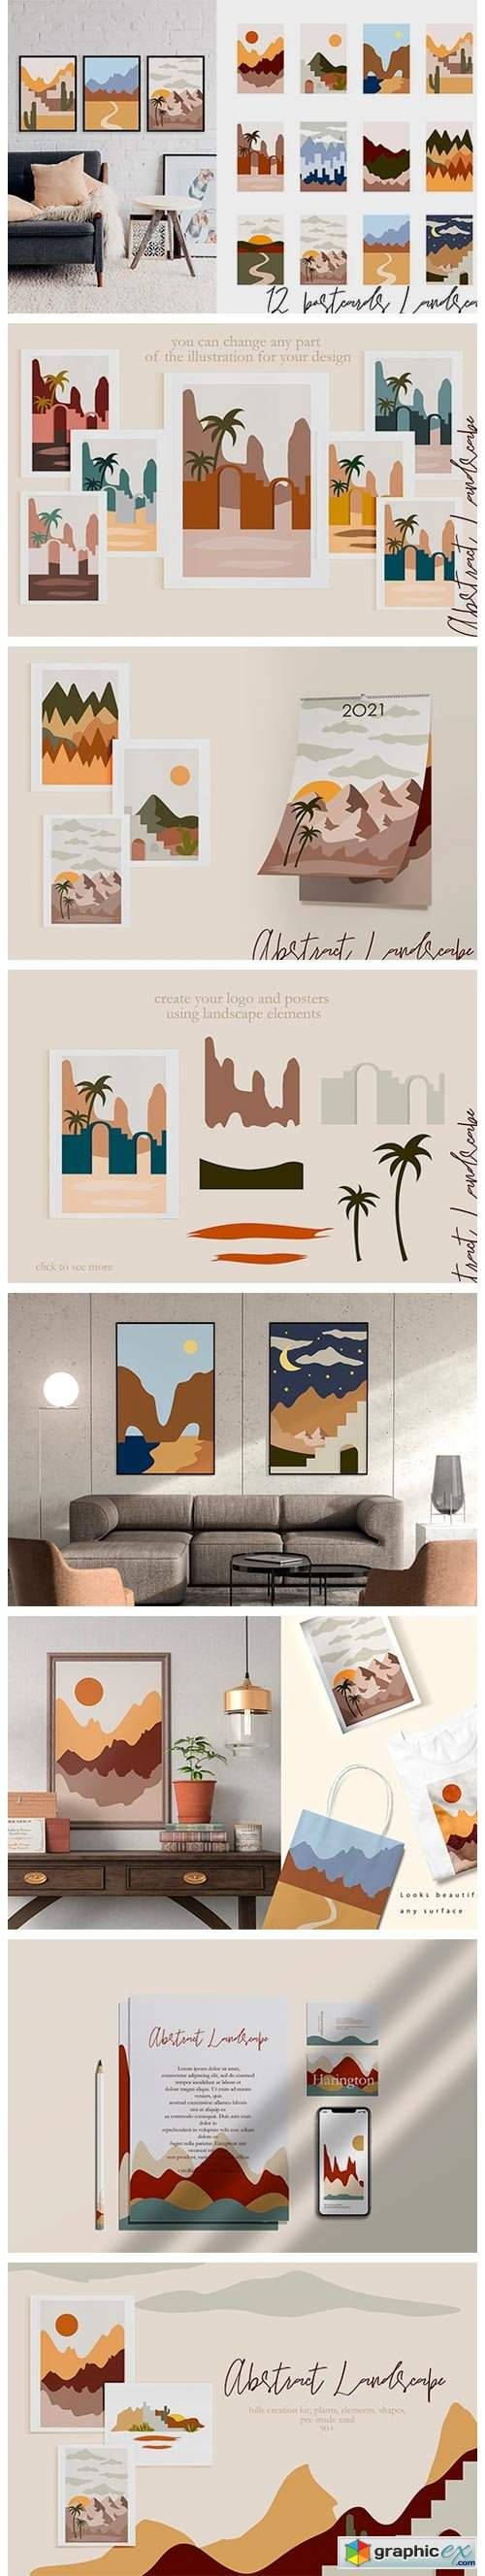 Abstract Landscape Creation Kit